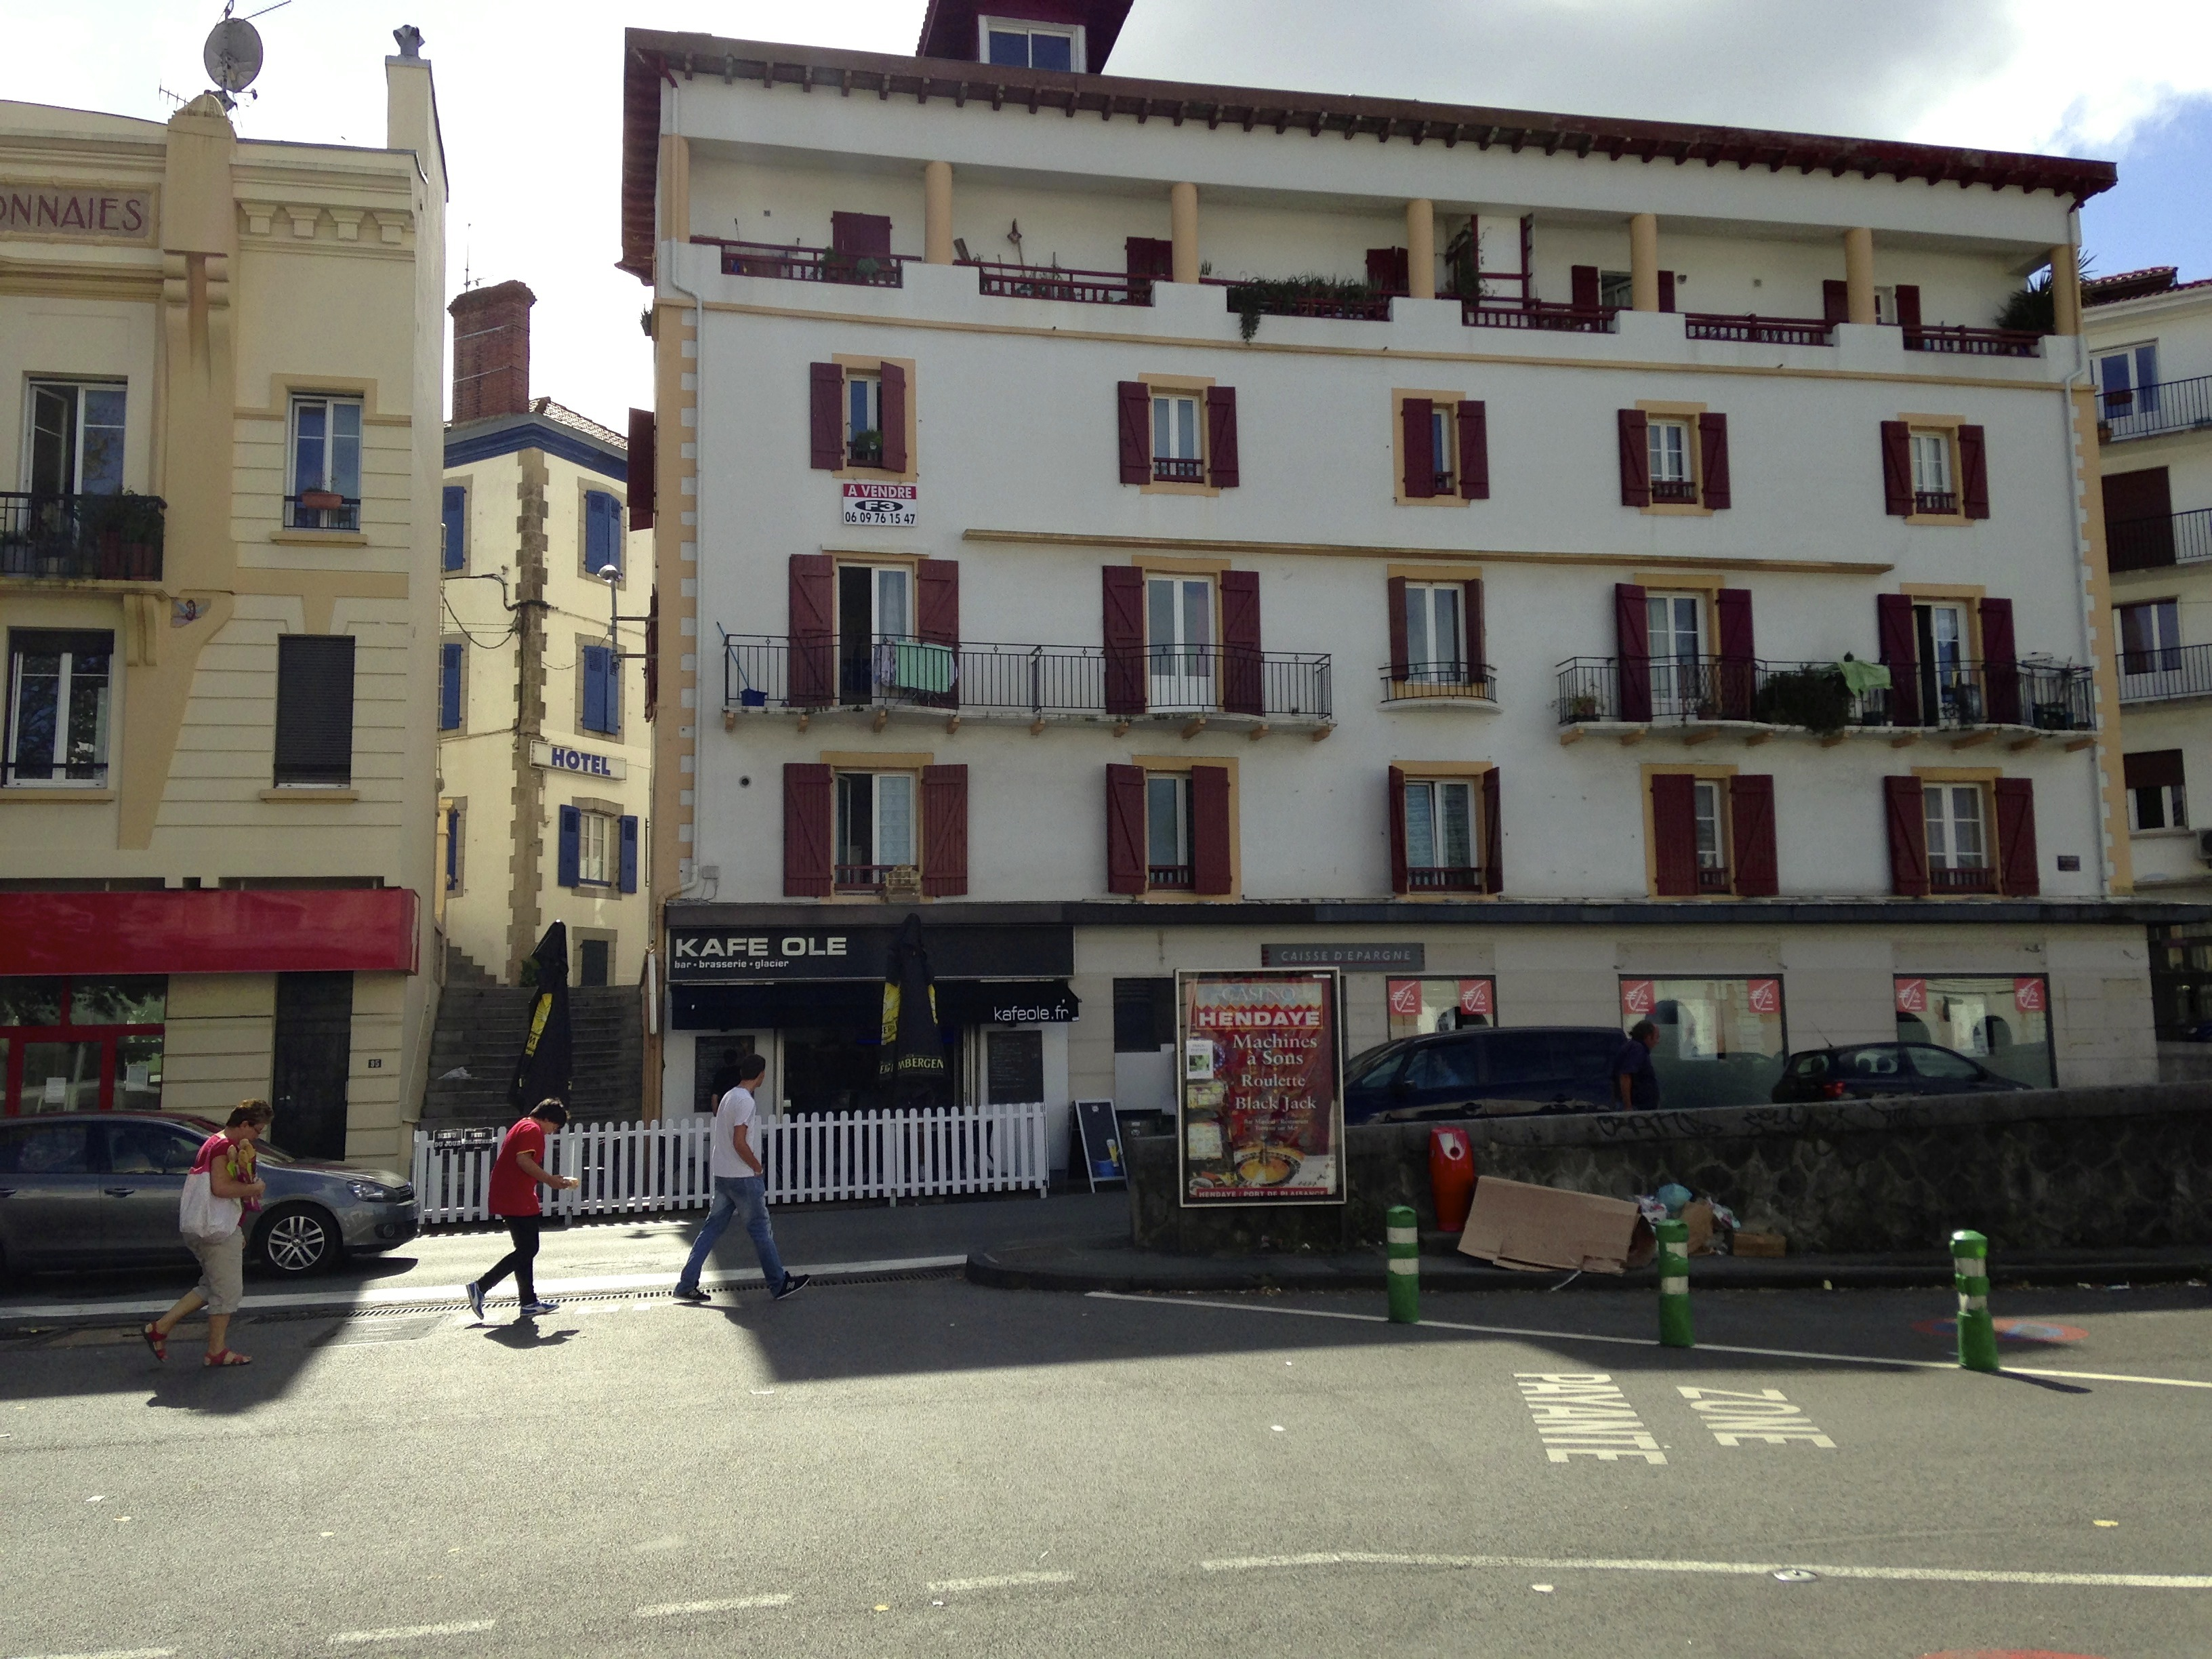 From st jean pied de port to espinal stories in trees - St jean pied de port to santiago distance ...